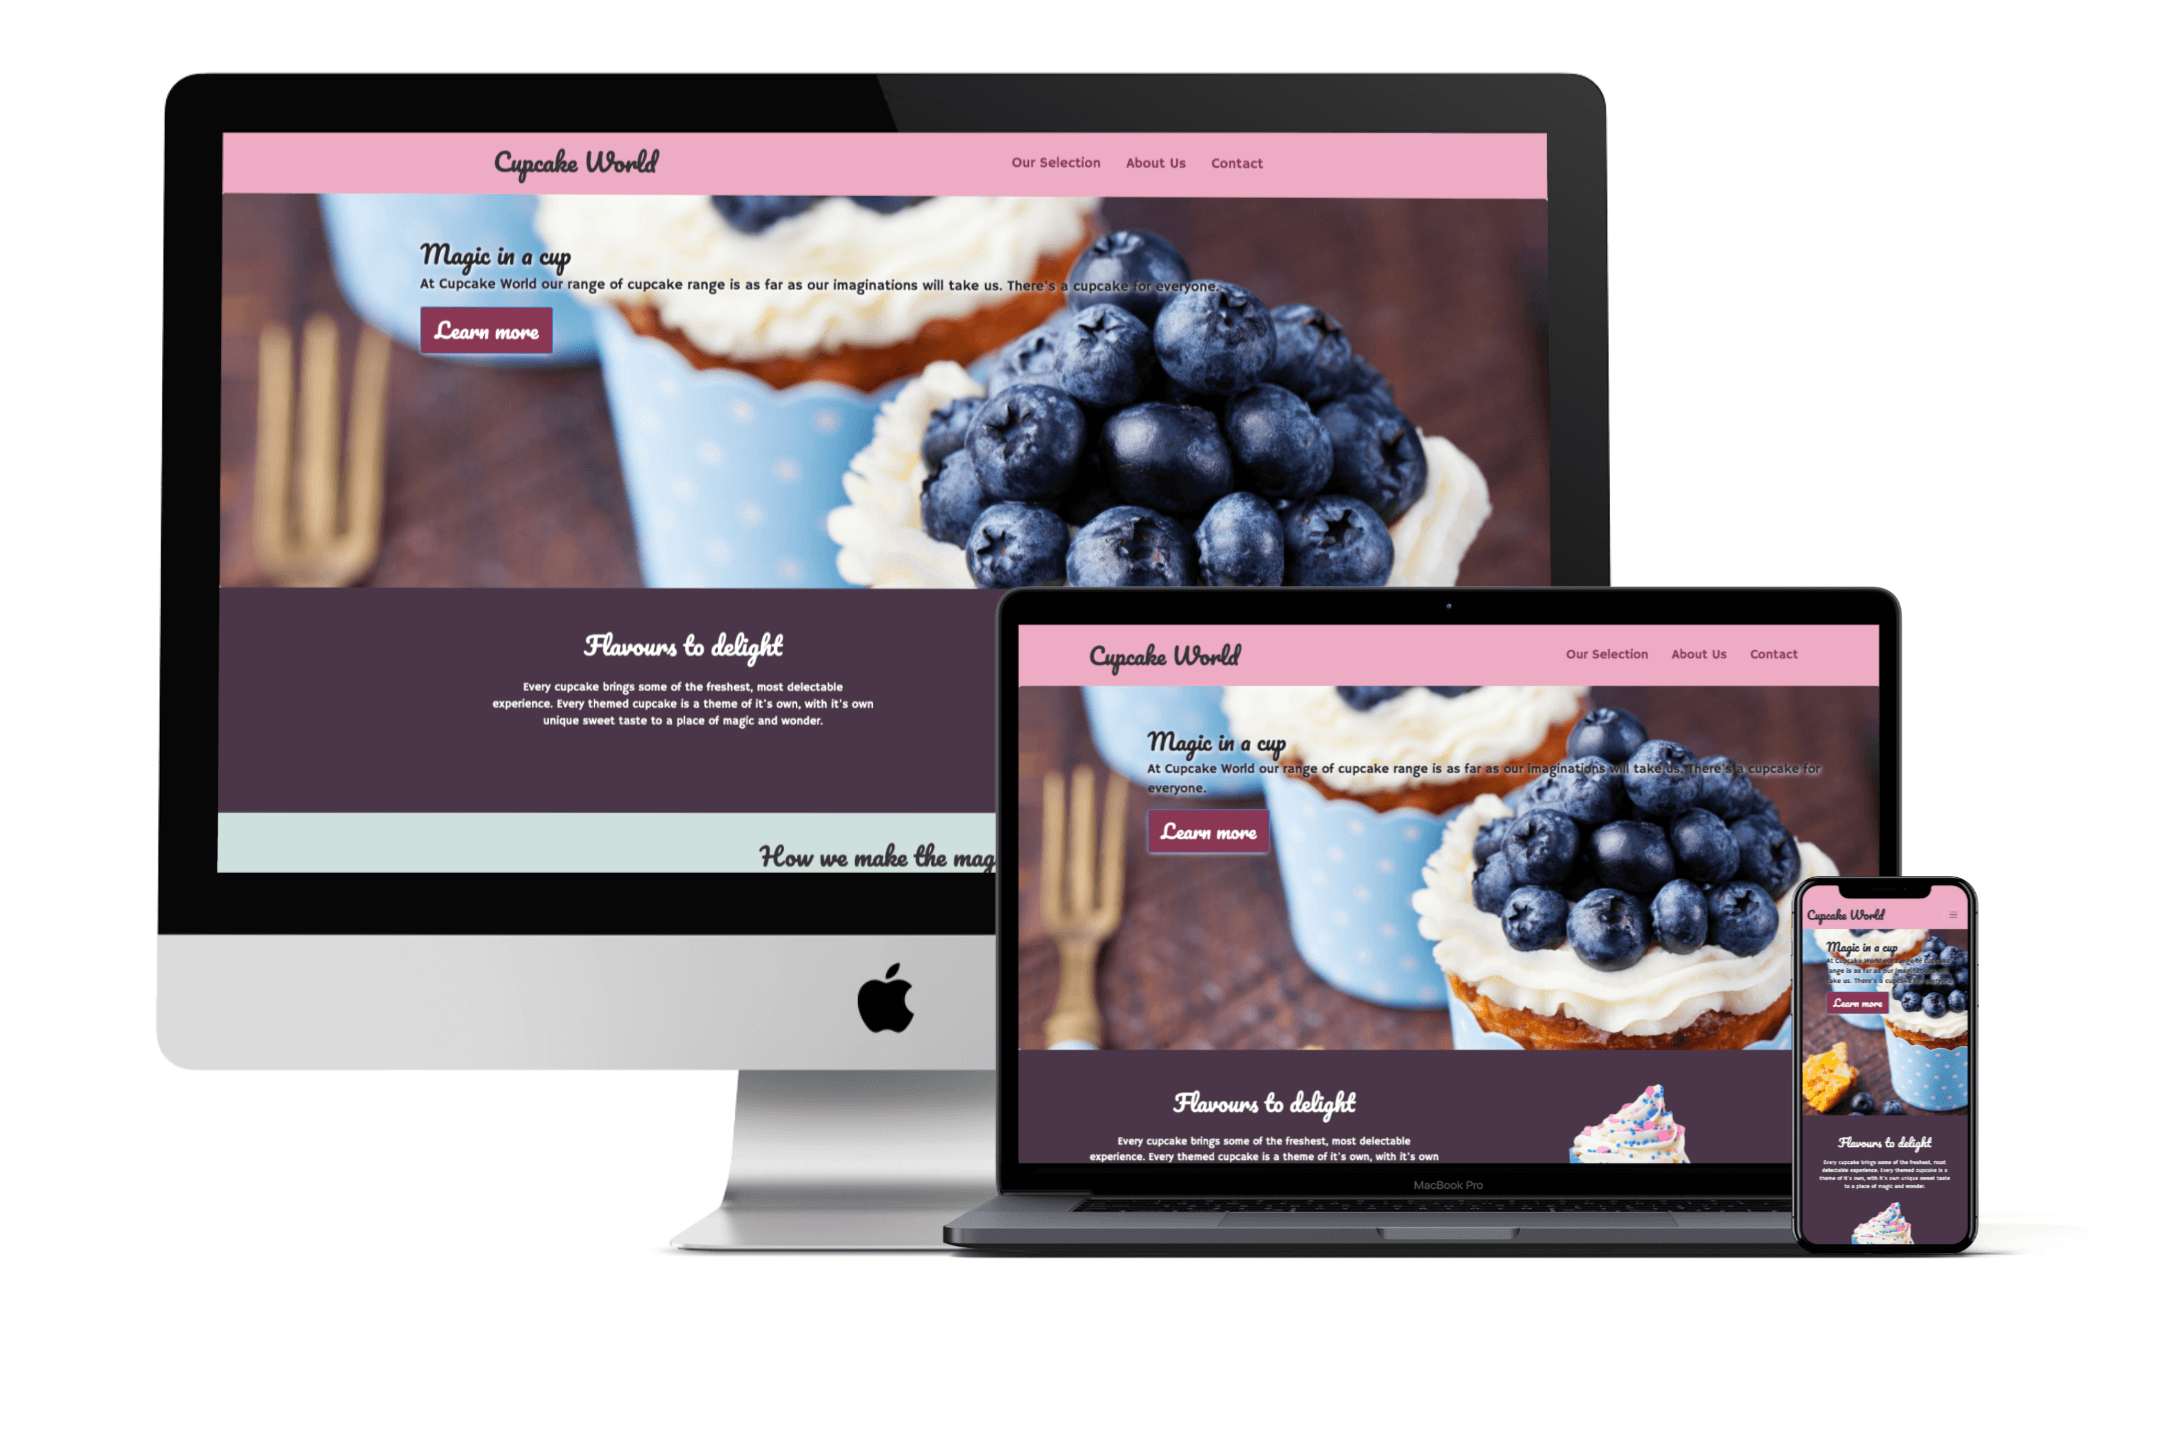 Cup Cake World's Website Design